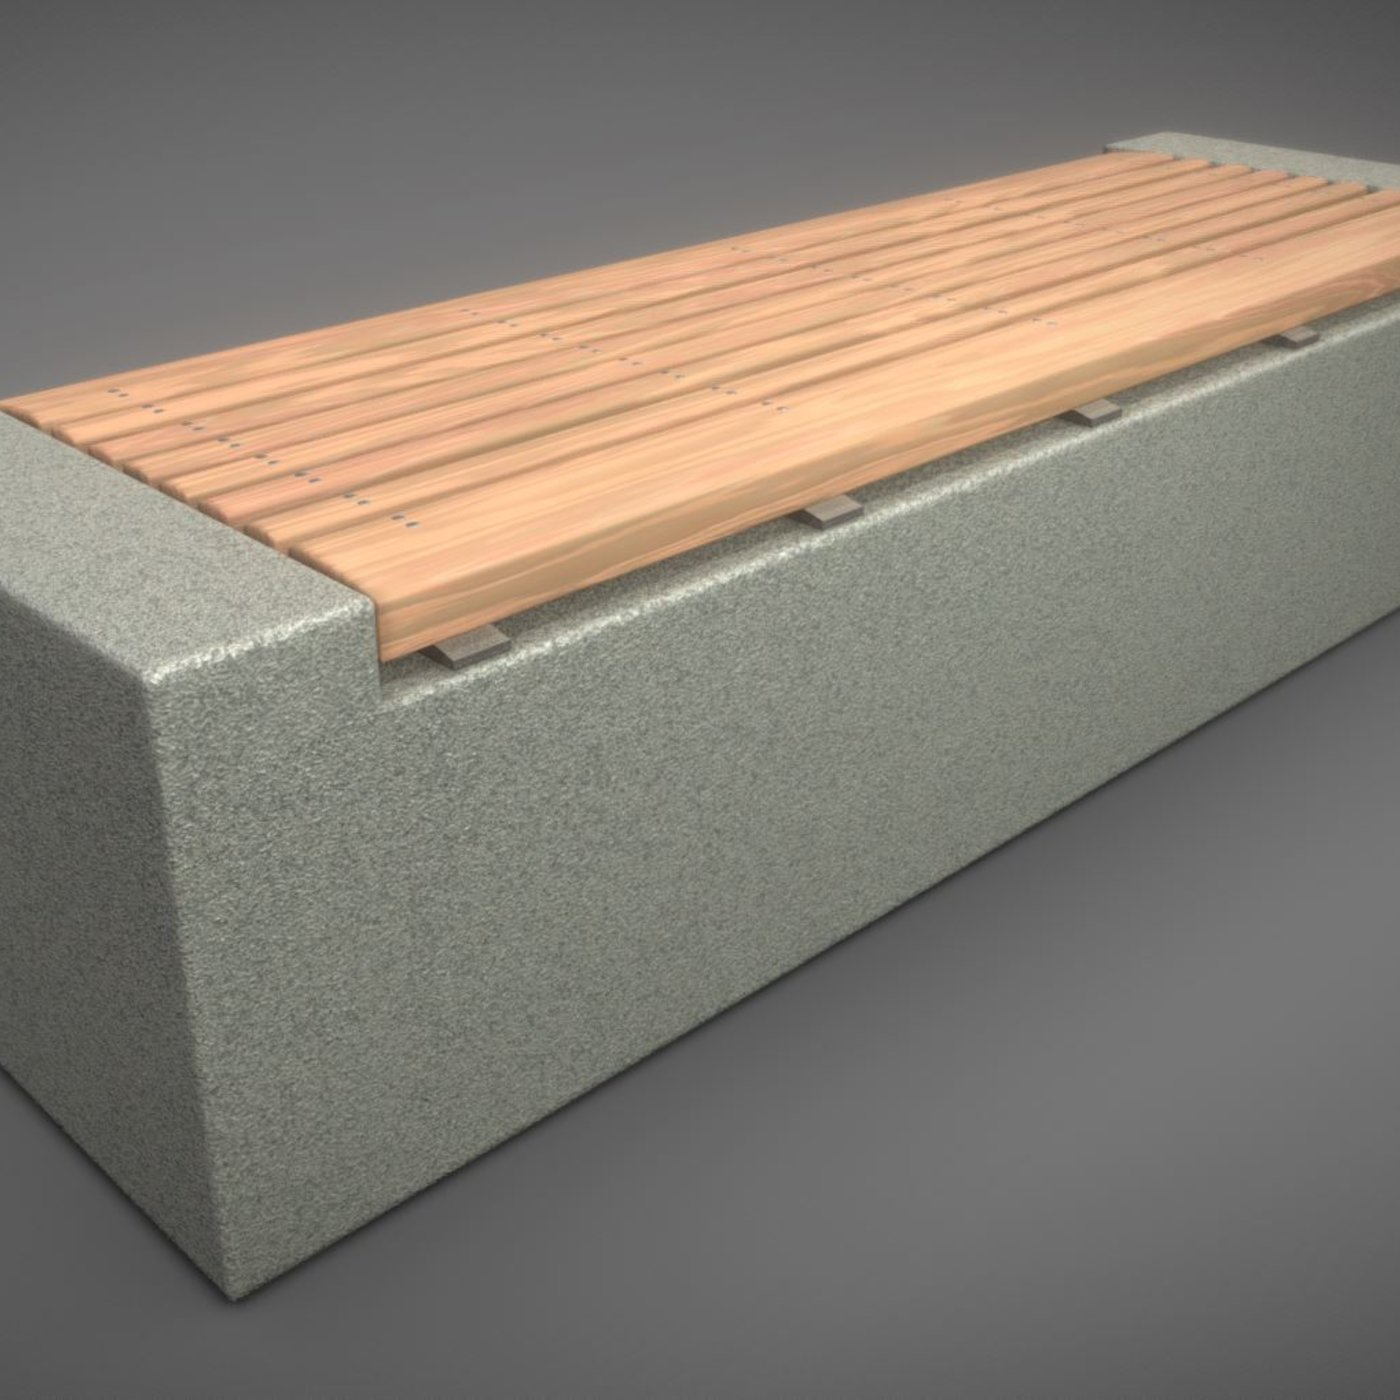 Wood Bench on Concrete Block